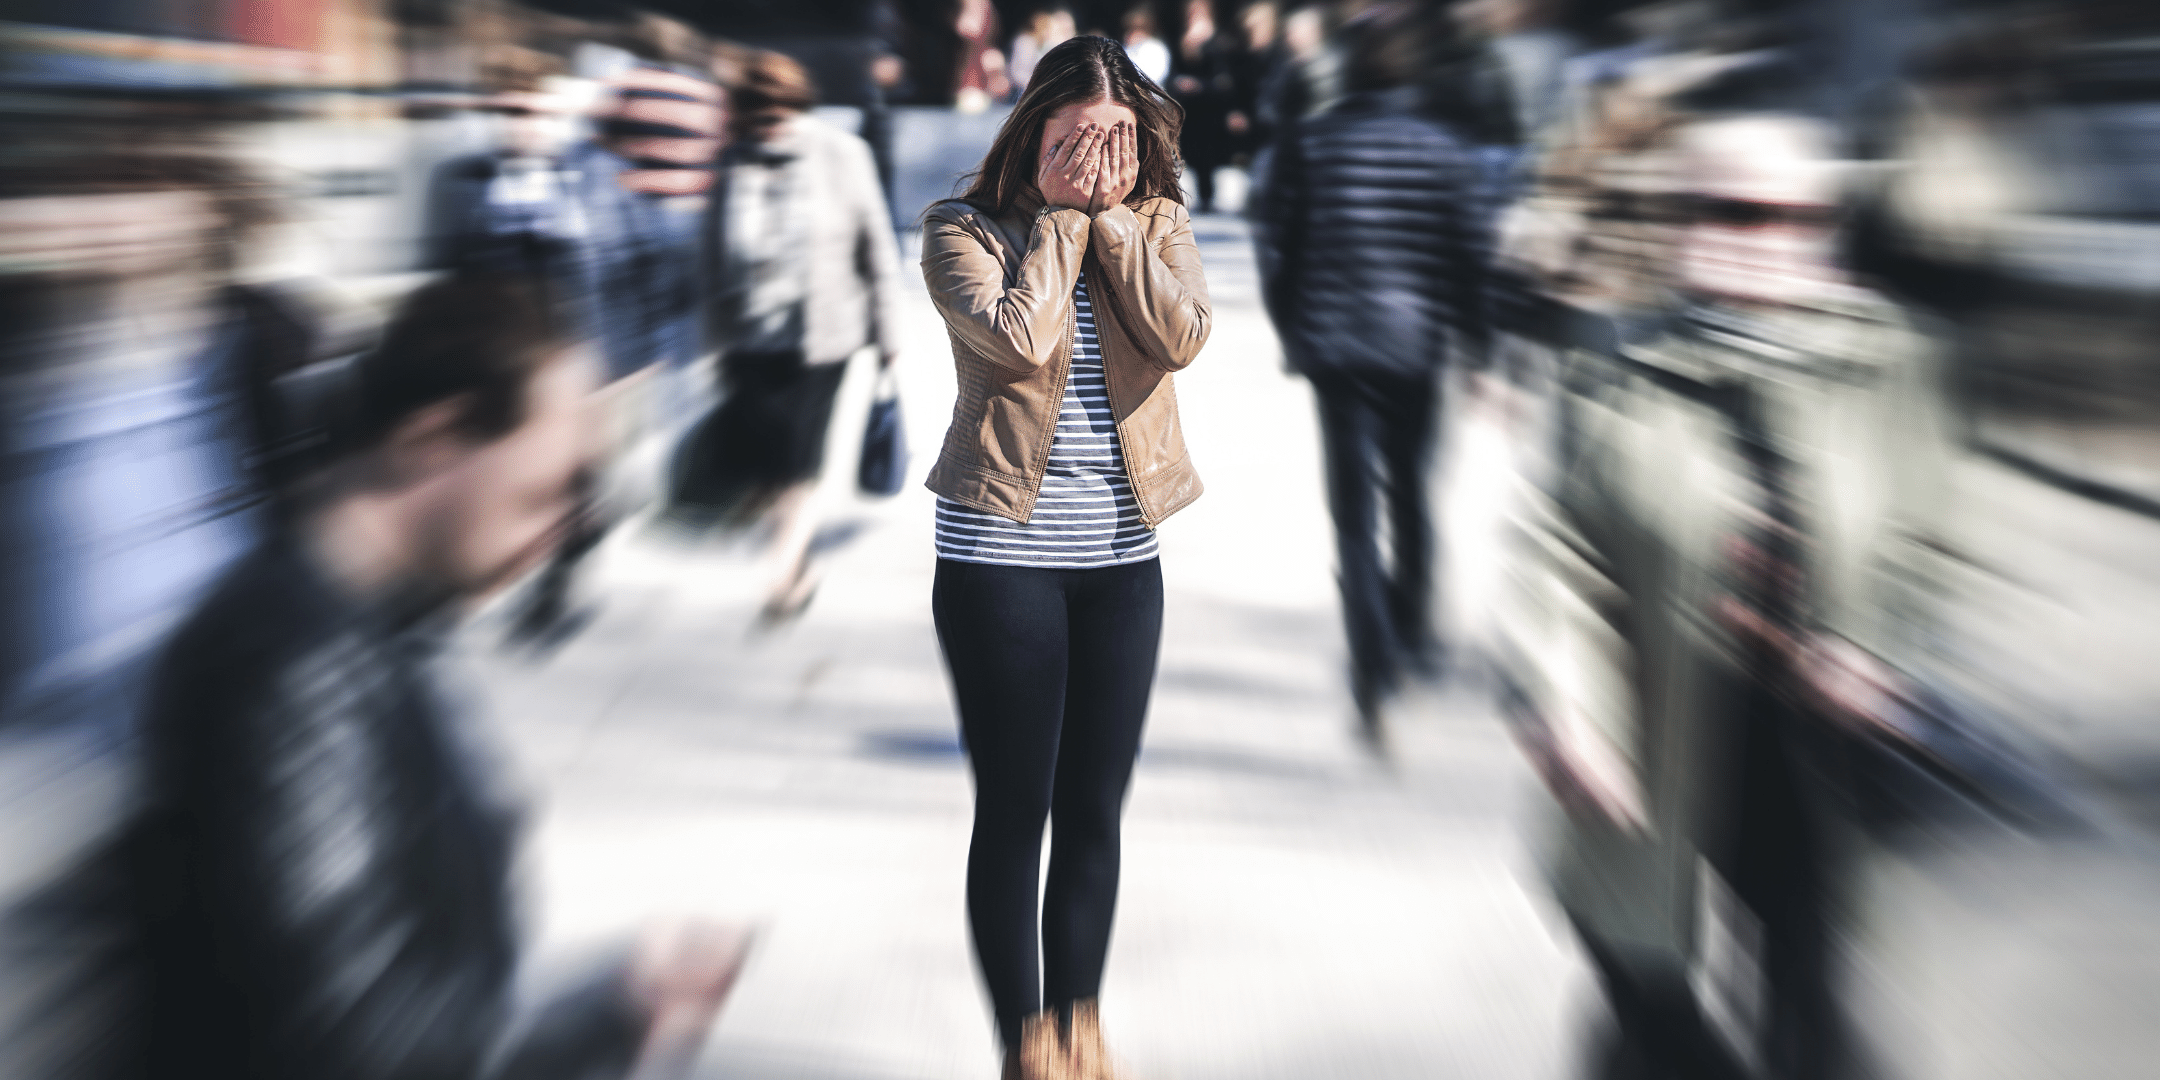 Let's talk about… Social Anxiety